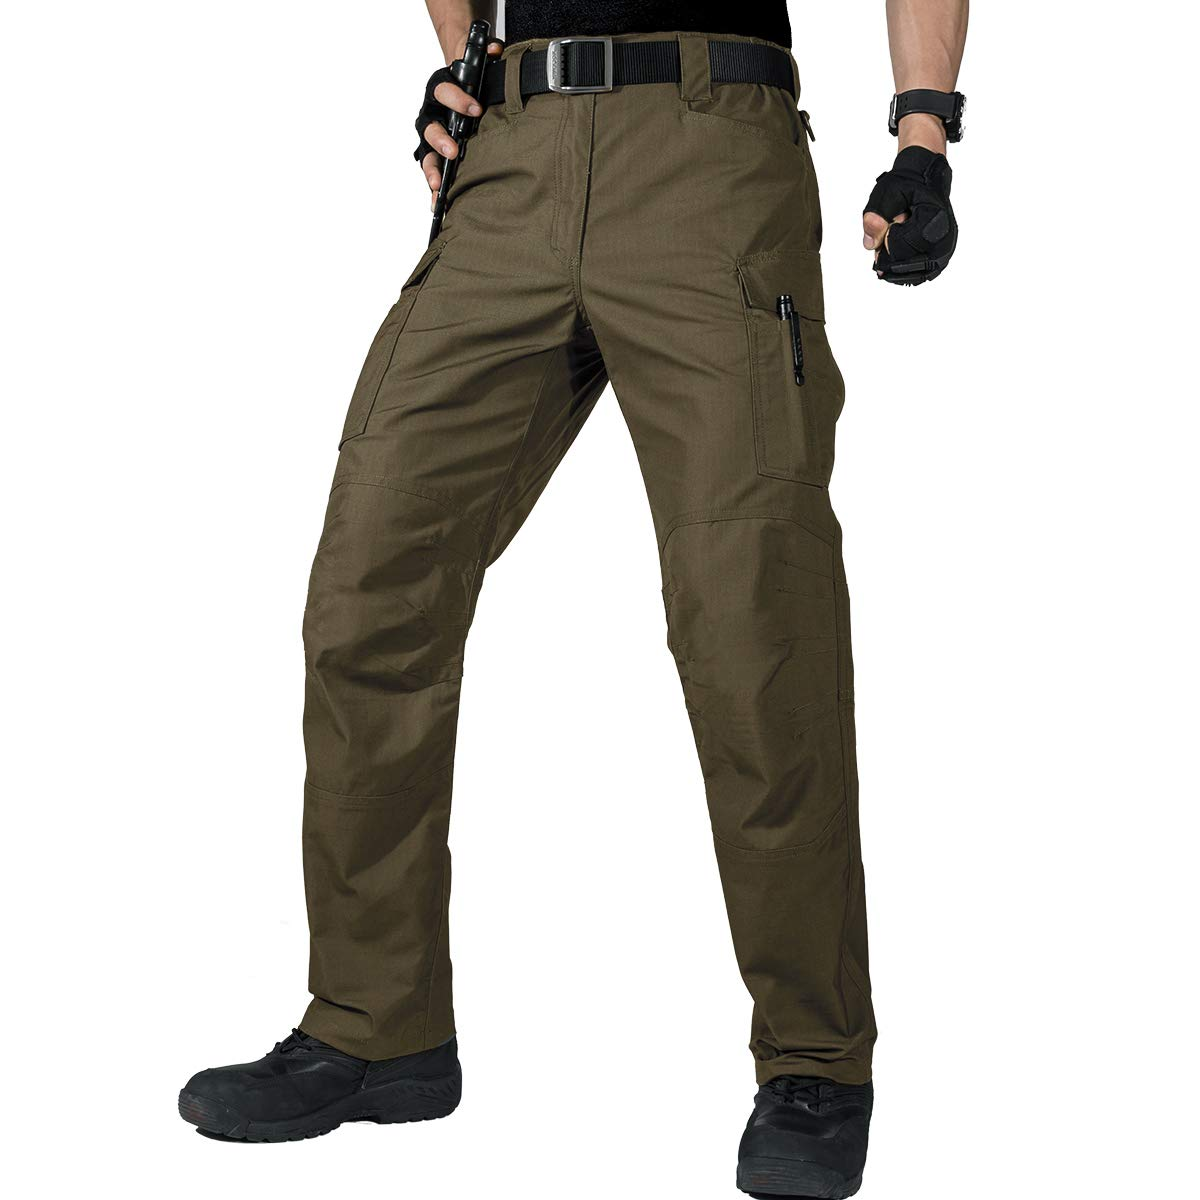 FREE SOLDIER Men's Water Resistant Pants Relaxed Fit Tactical Combat Army Cargo Work Pants with Multi Pocket (Dark Green 40W/30L)